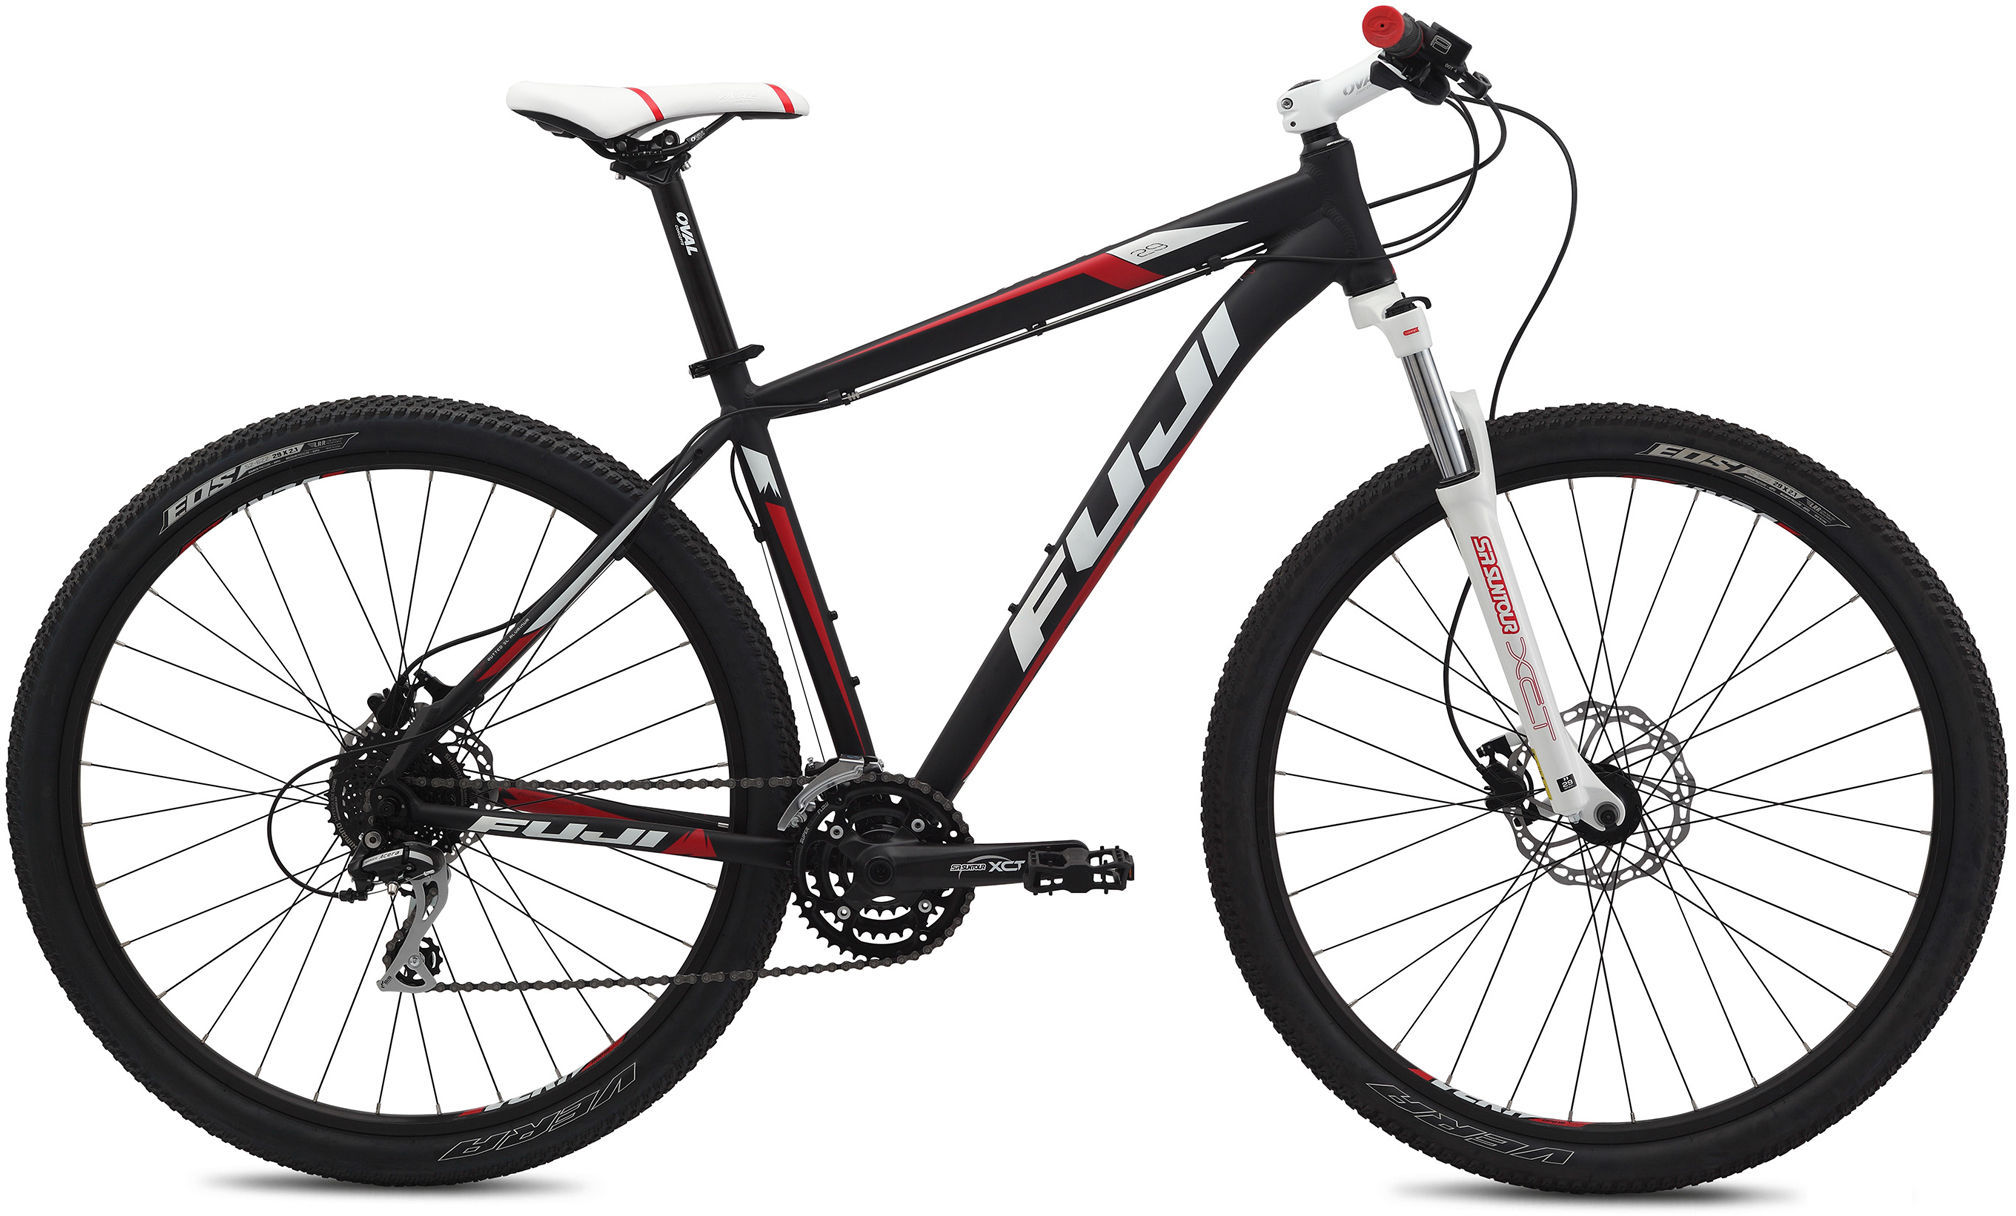 Fuji Nevada 29er 1 6 Disc 2014 Review The Bike List